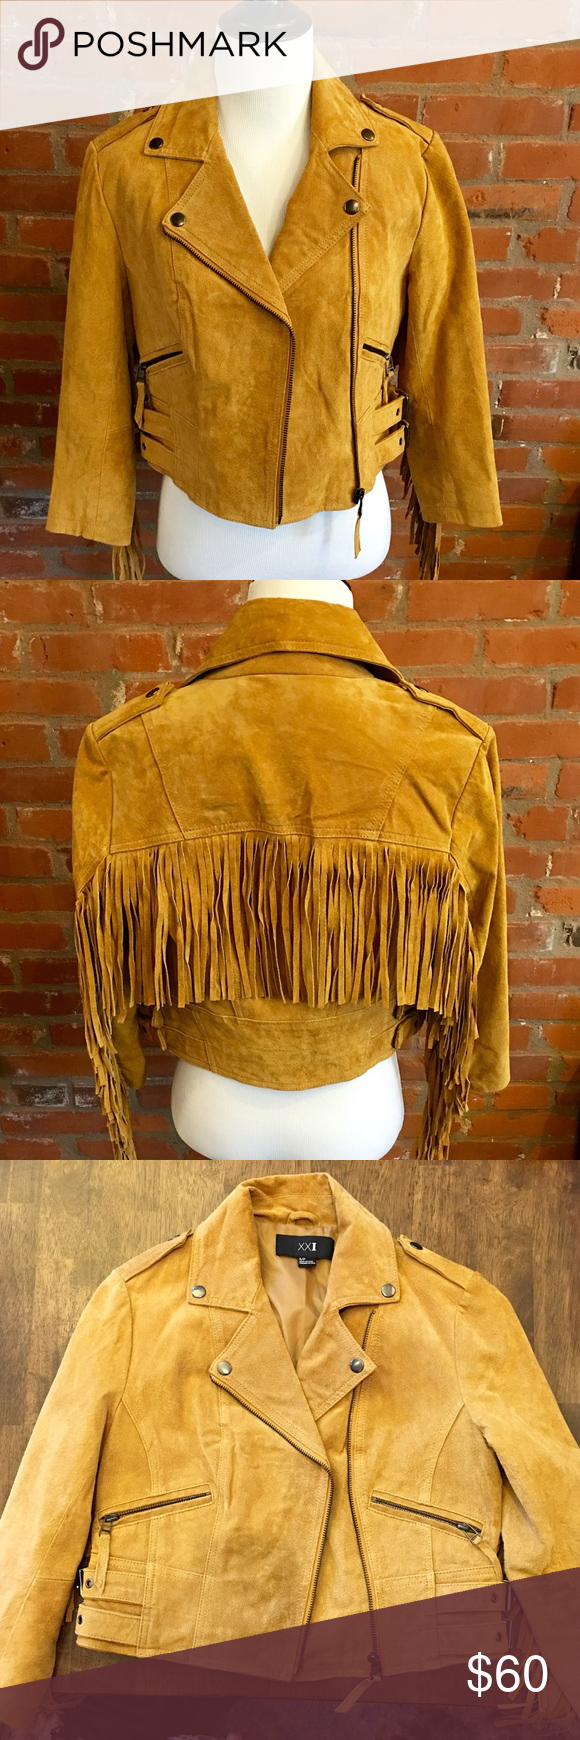 100 Tan Leather Jacket Brand New With Out Tags! Never